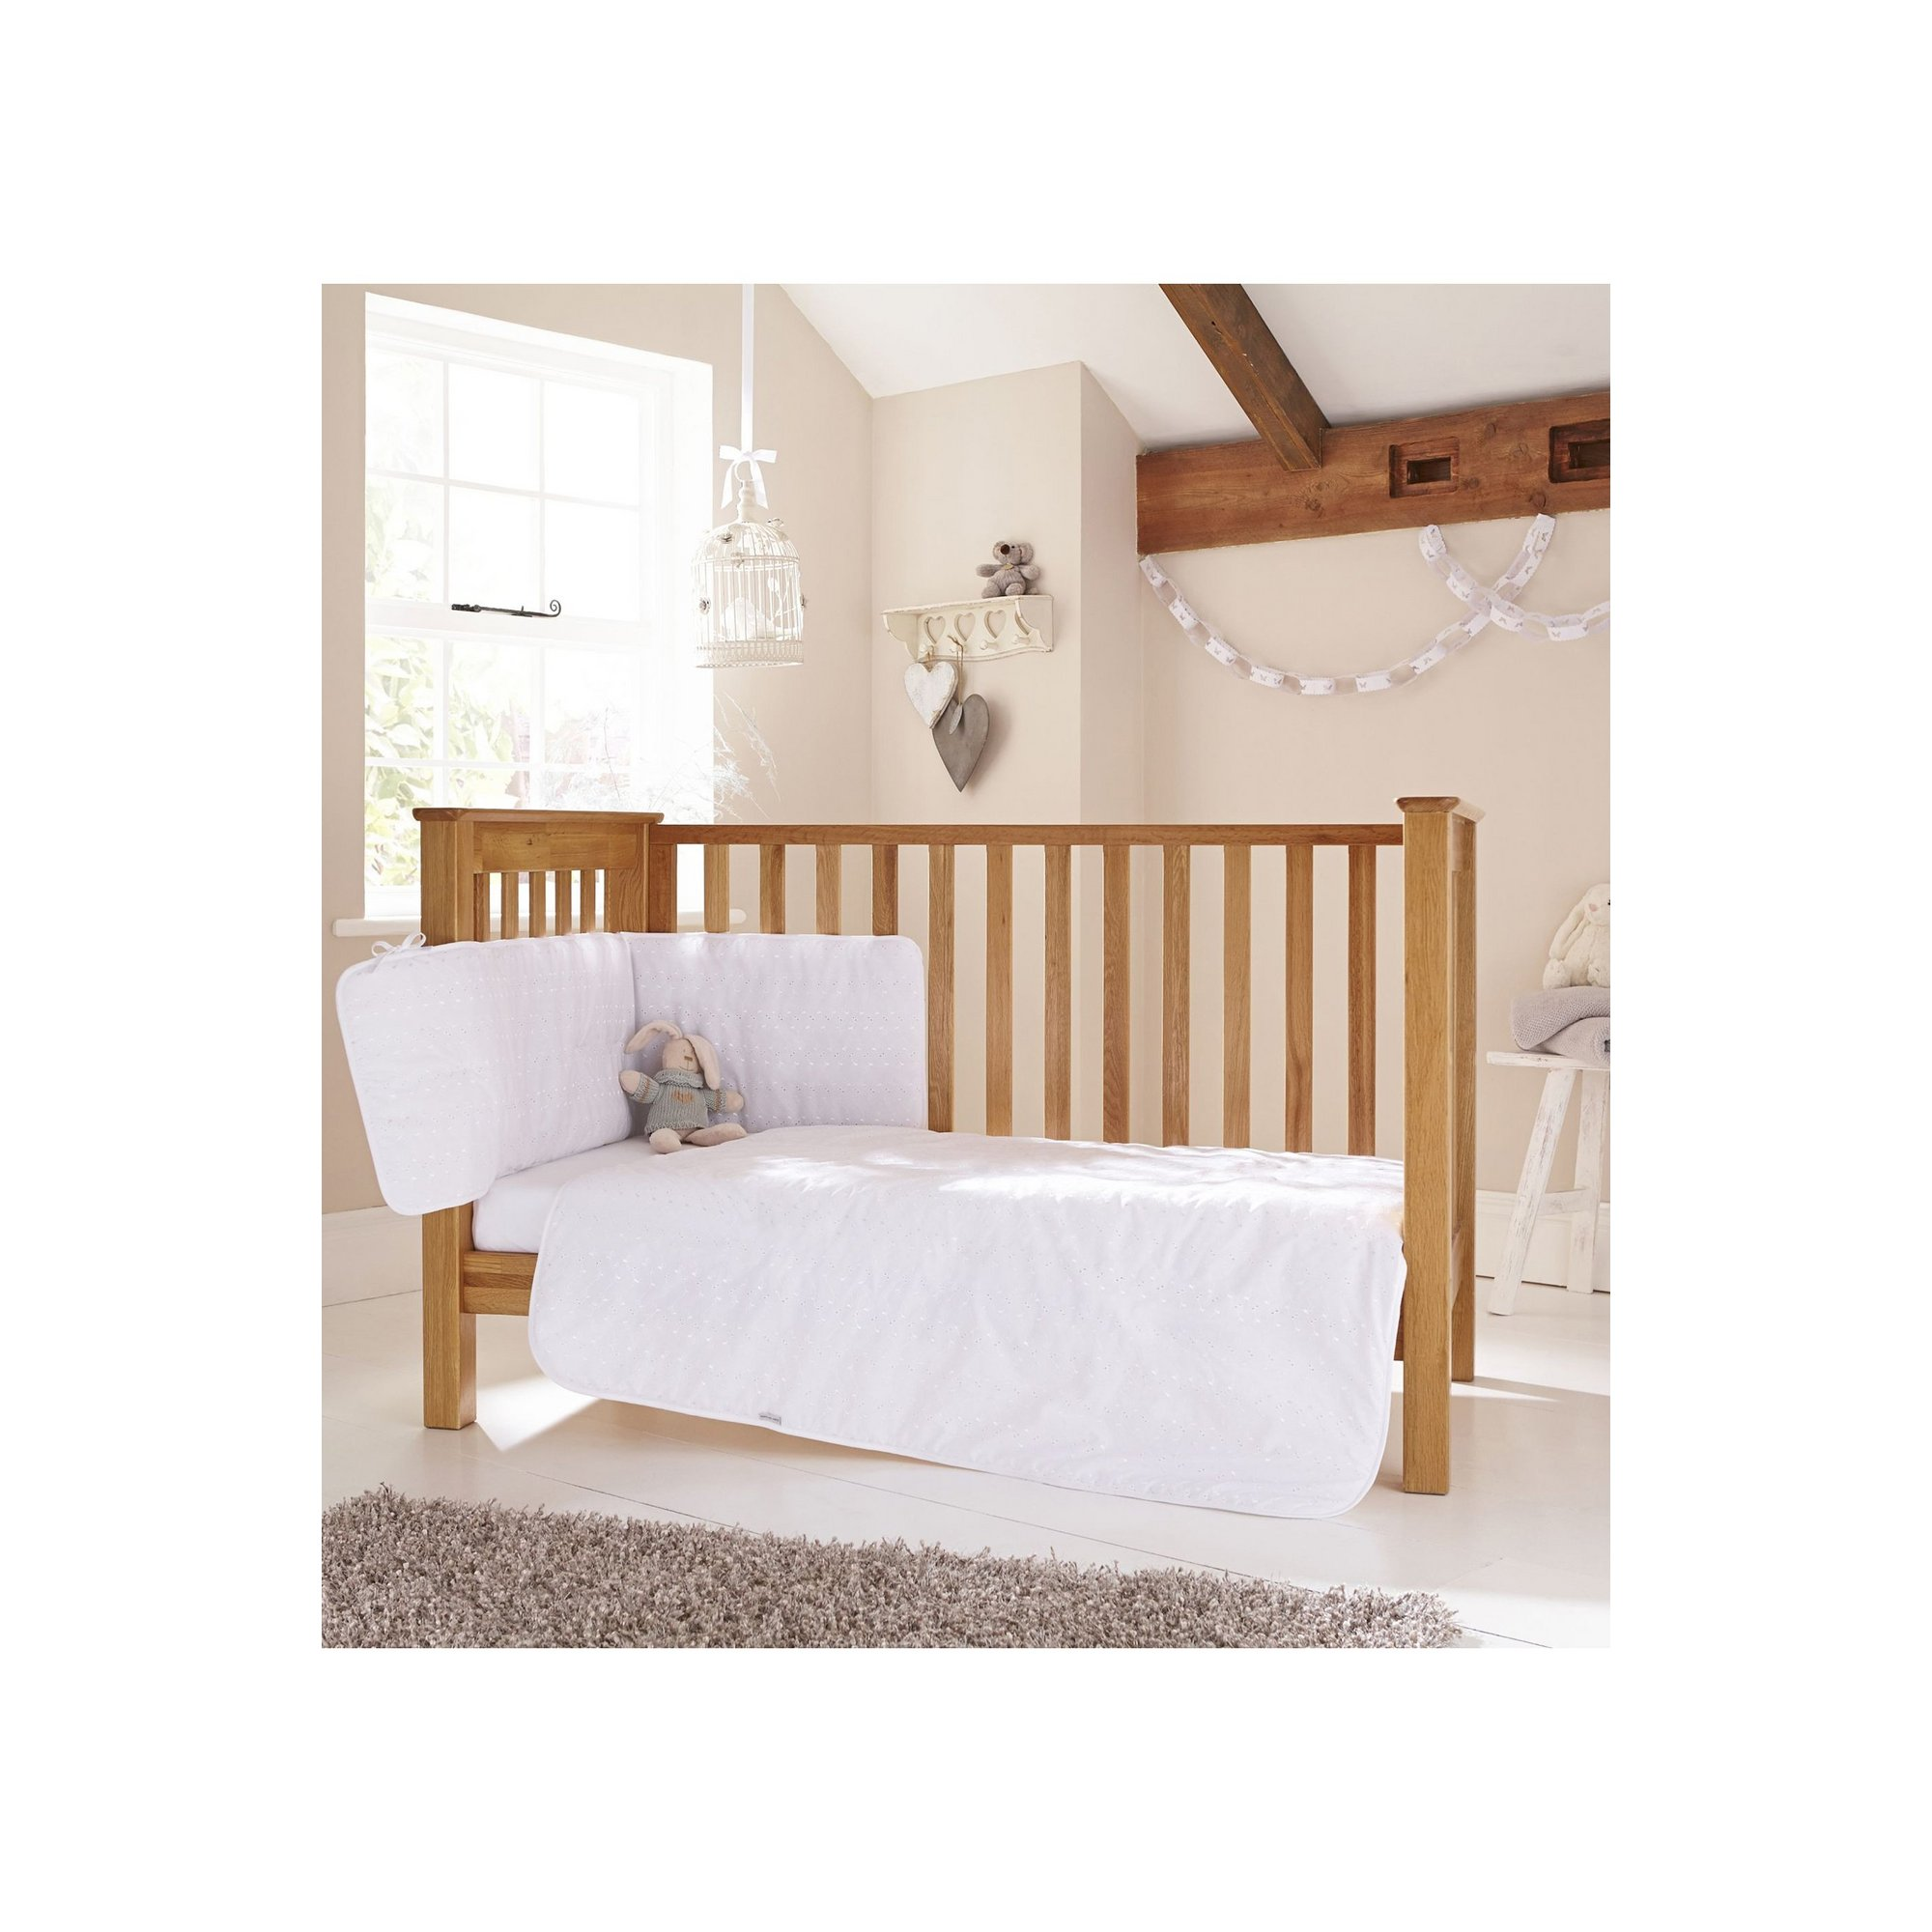 Image of Clair de Lune Broderie Anglaise 3 Piece Cot/Cot Bed Bedding Set